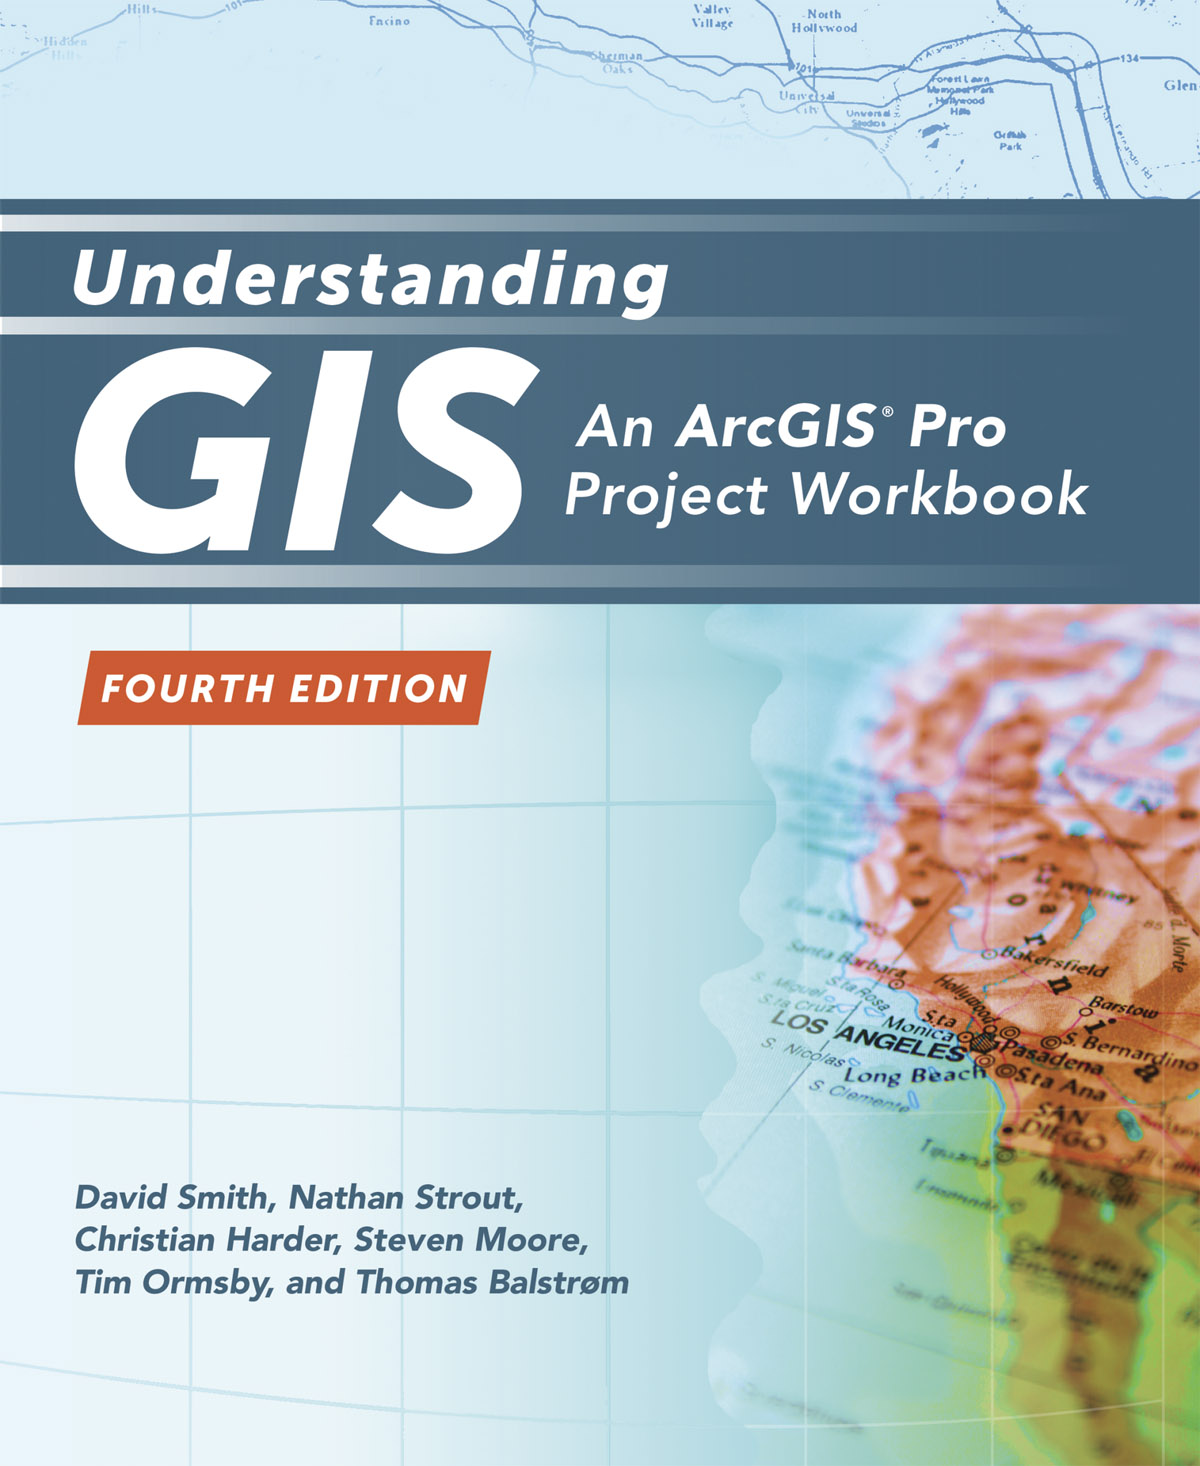 Understanding GIS, Fourth Edition, guides readers through the project workflow.